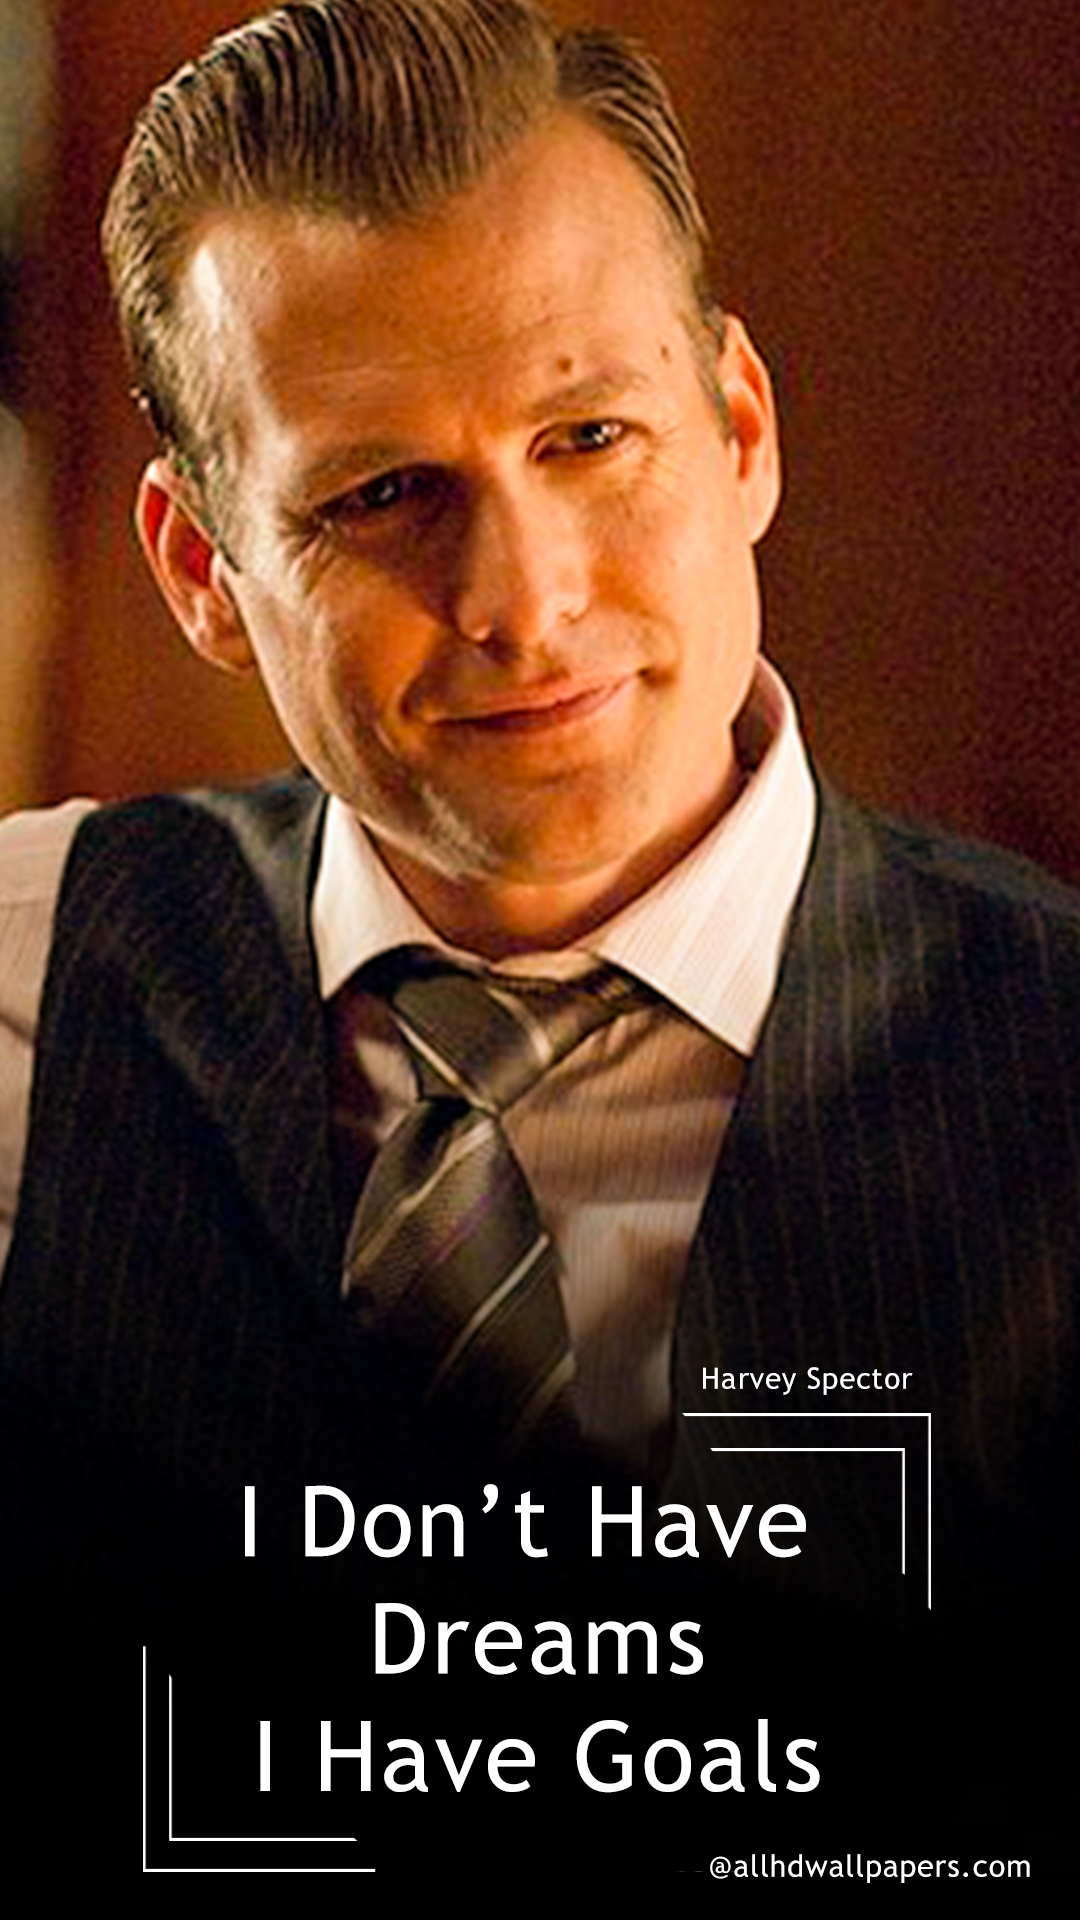 best Harvey Specter mobile